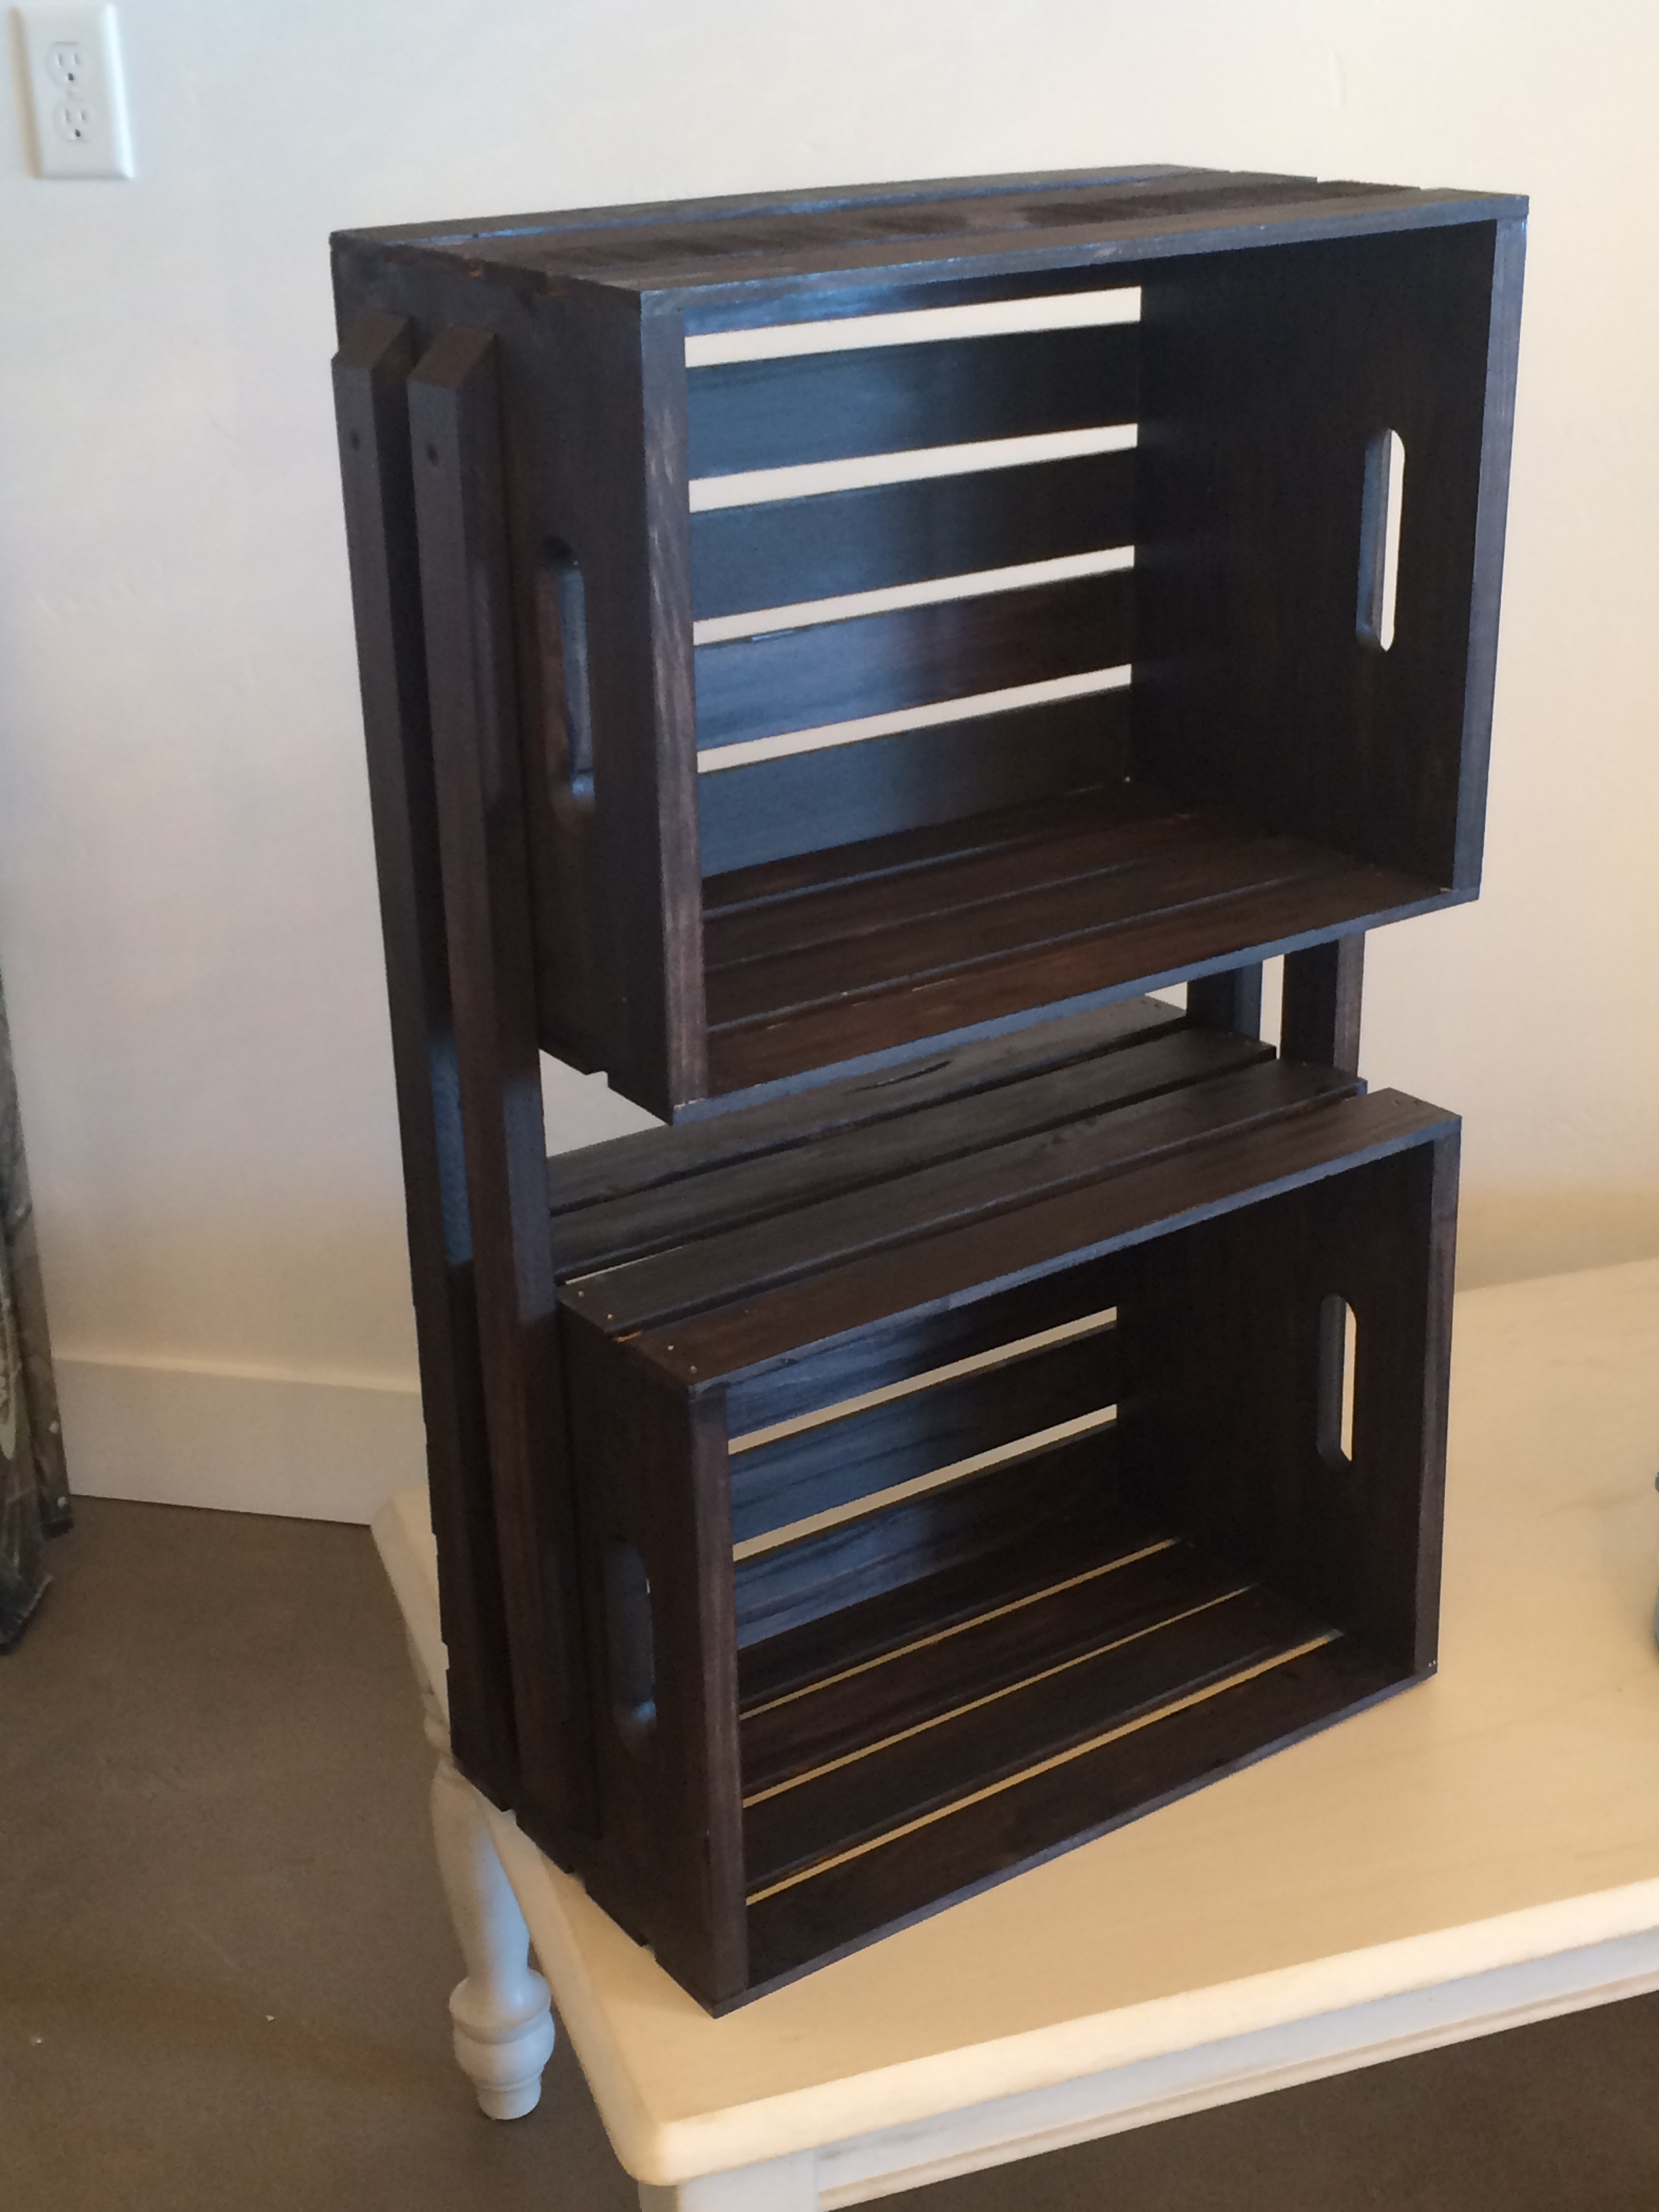 Double Crate Shelf, CLEARANCE: $65